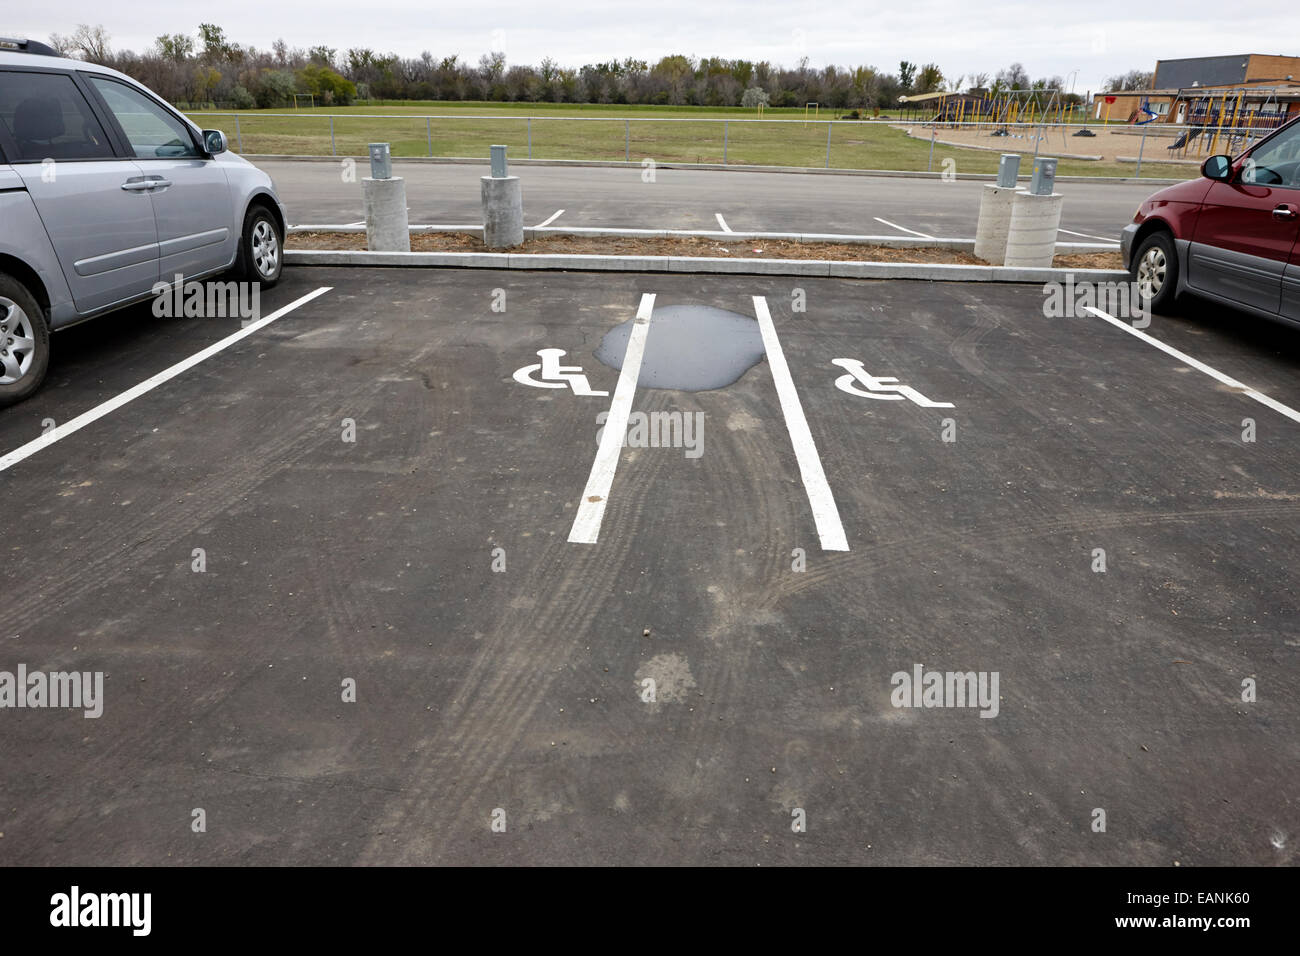 disabled parking bays in parking lot Saskatchewan Canada - Stock Image